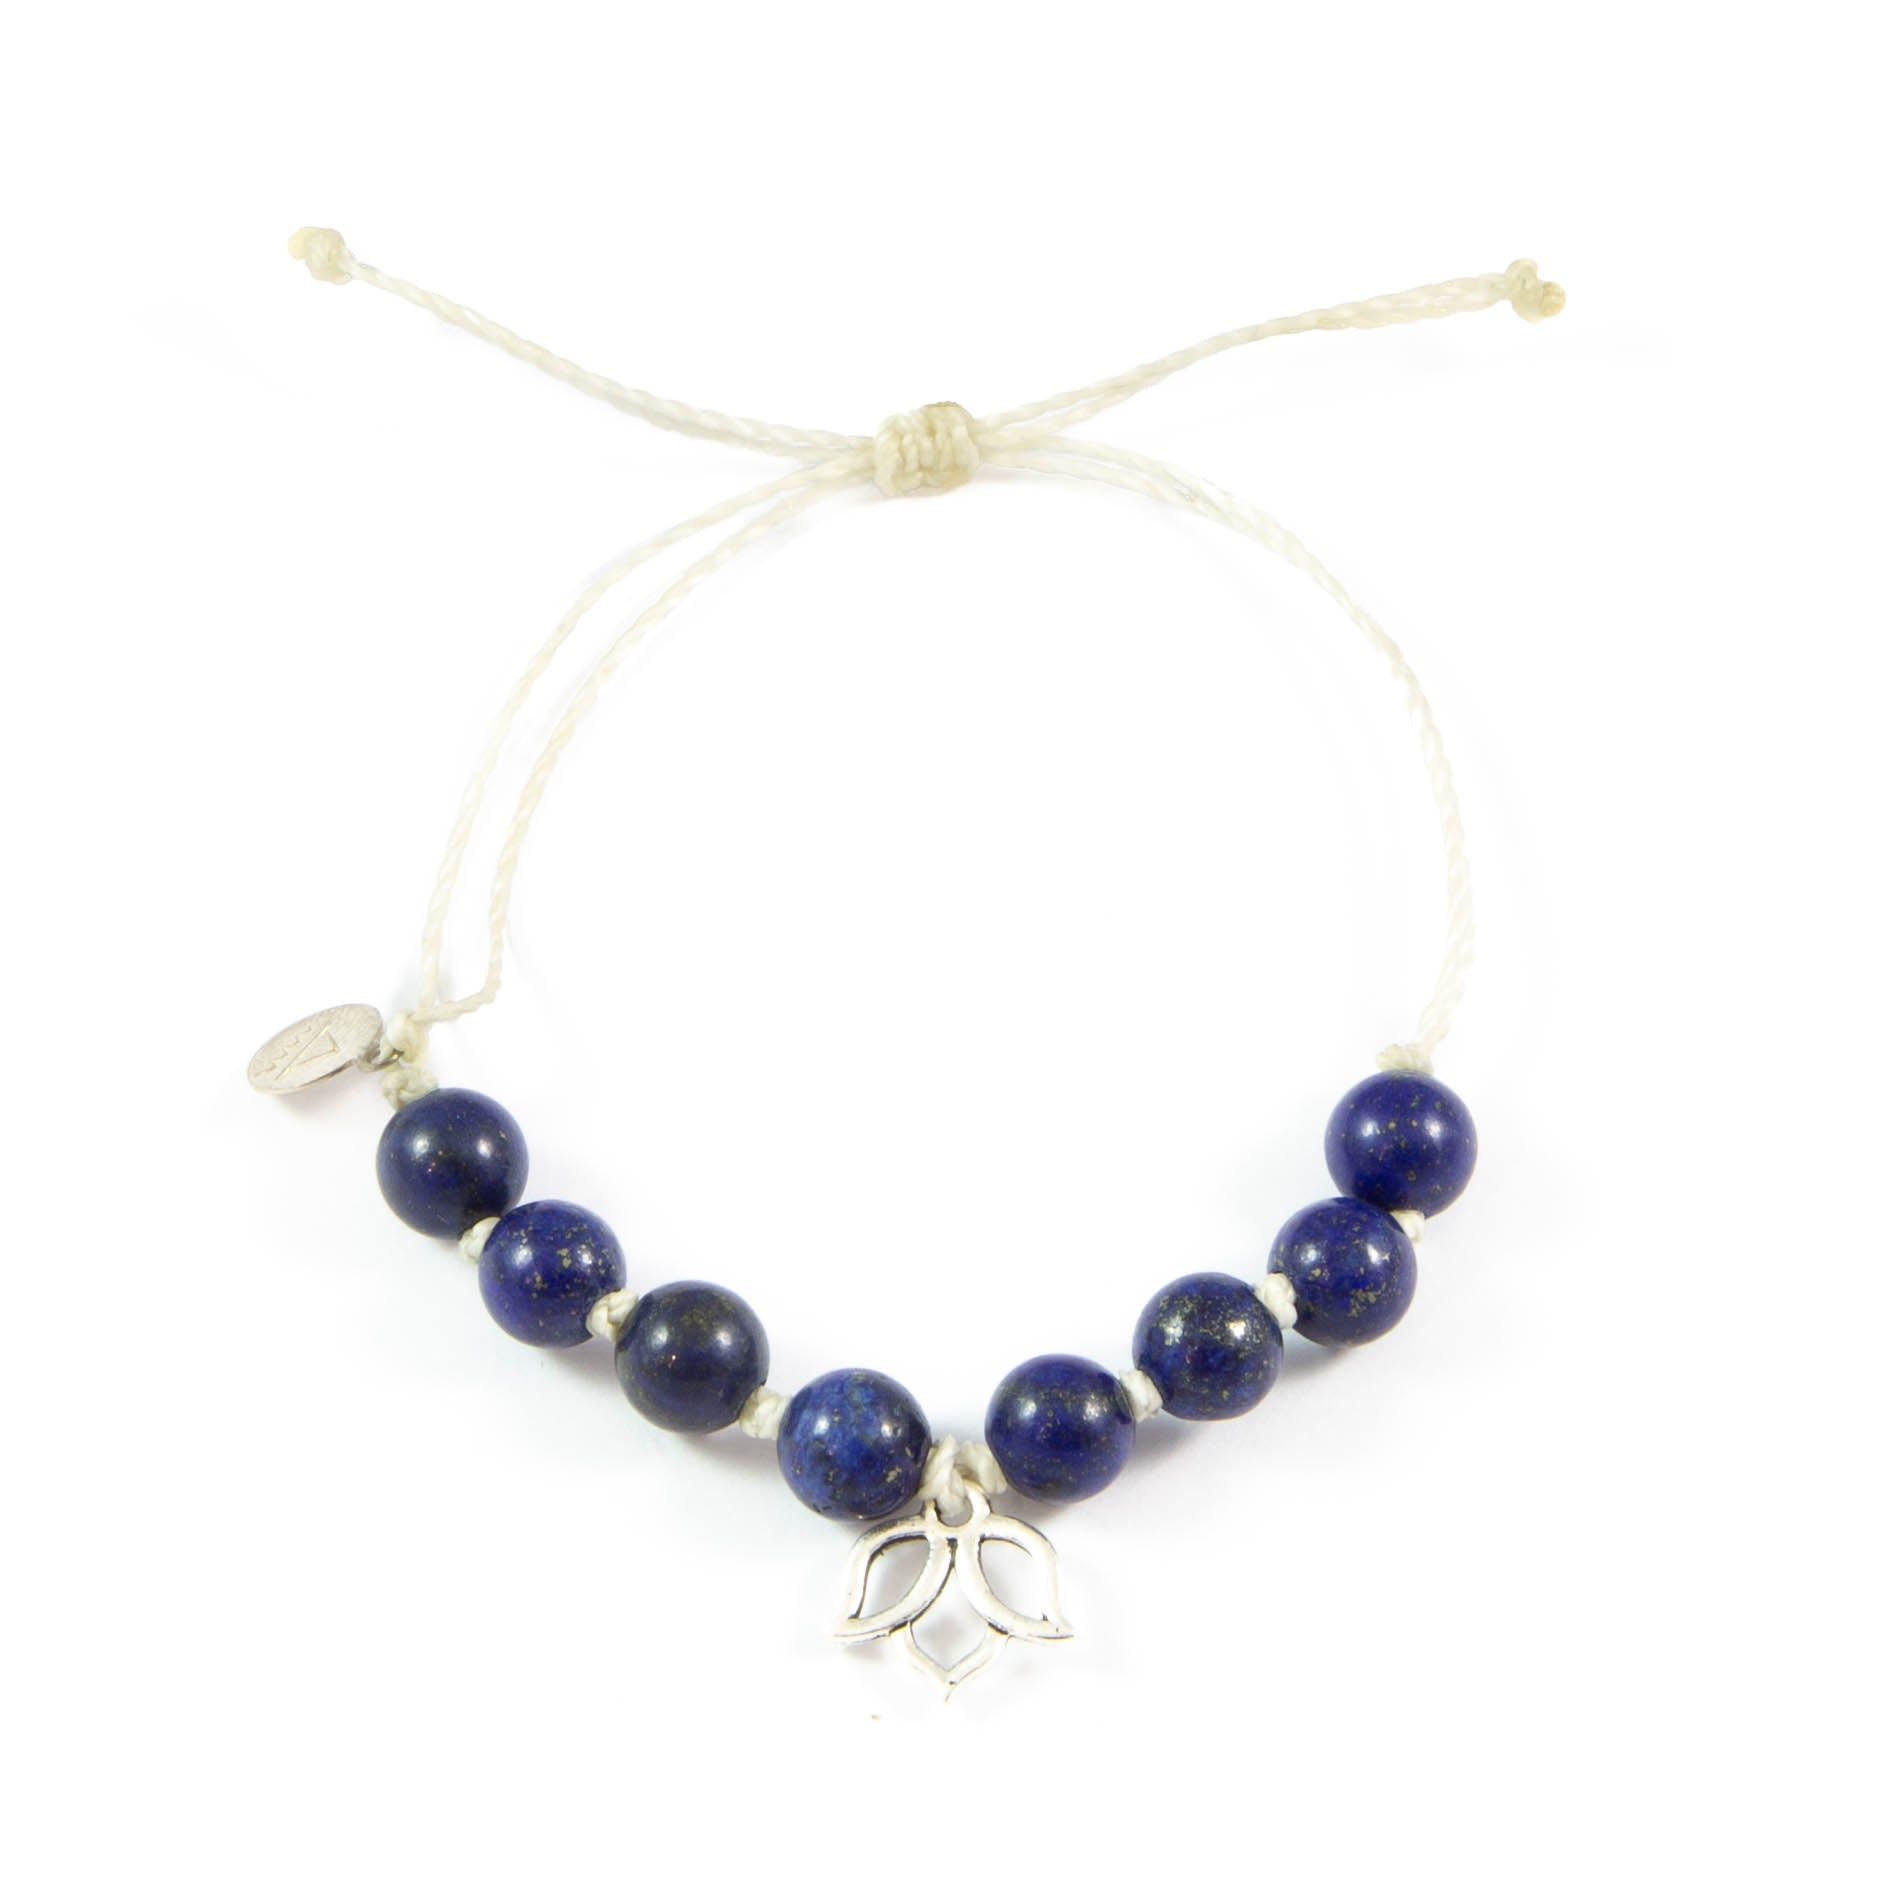 White & Blue Lapis Lotus Flower Bracelet in Silver